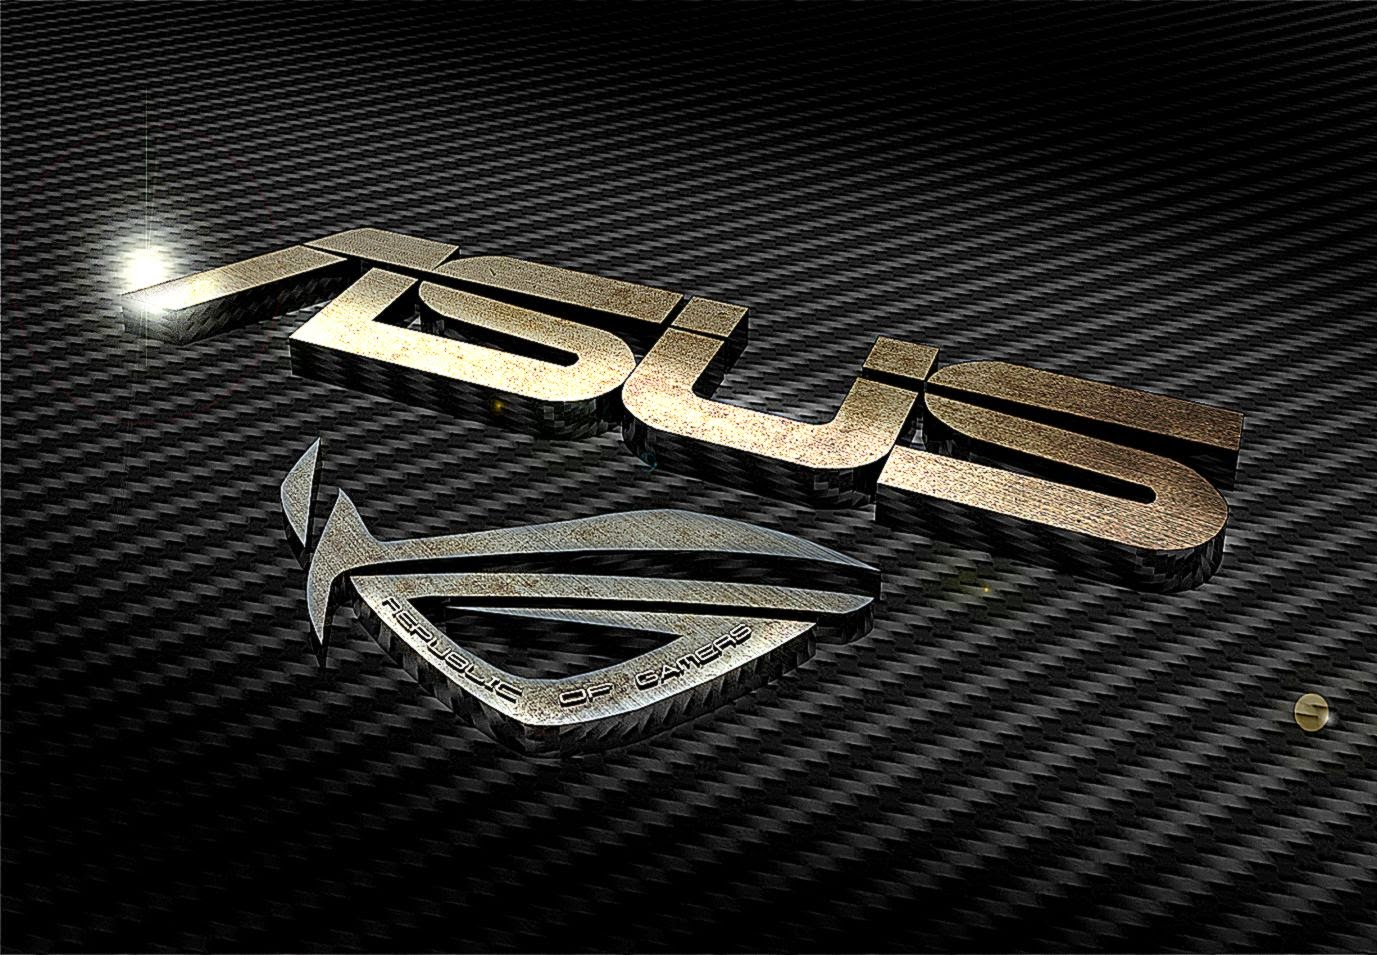 Asus 3D Logo Wallpaper Images 1199 HD Wallpaper Feewall 1377x955